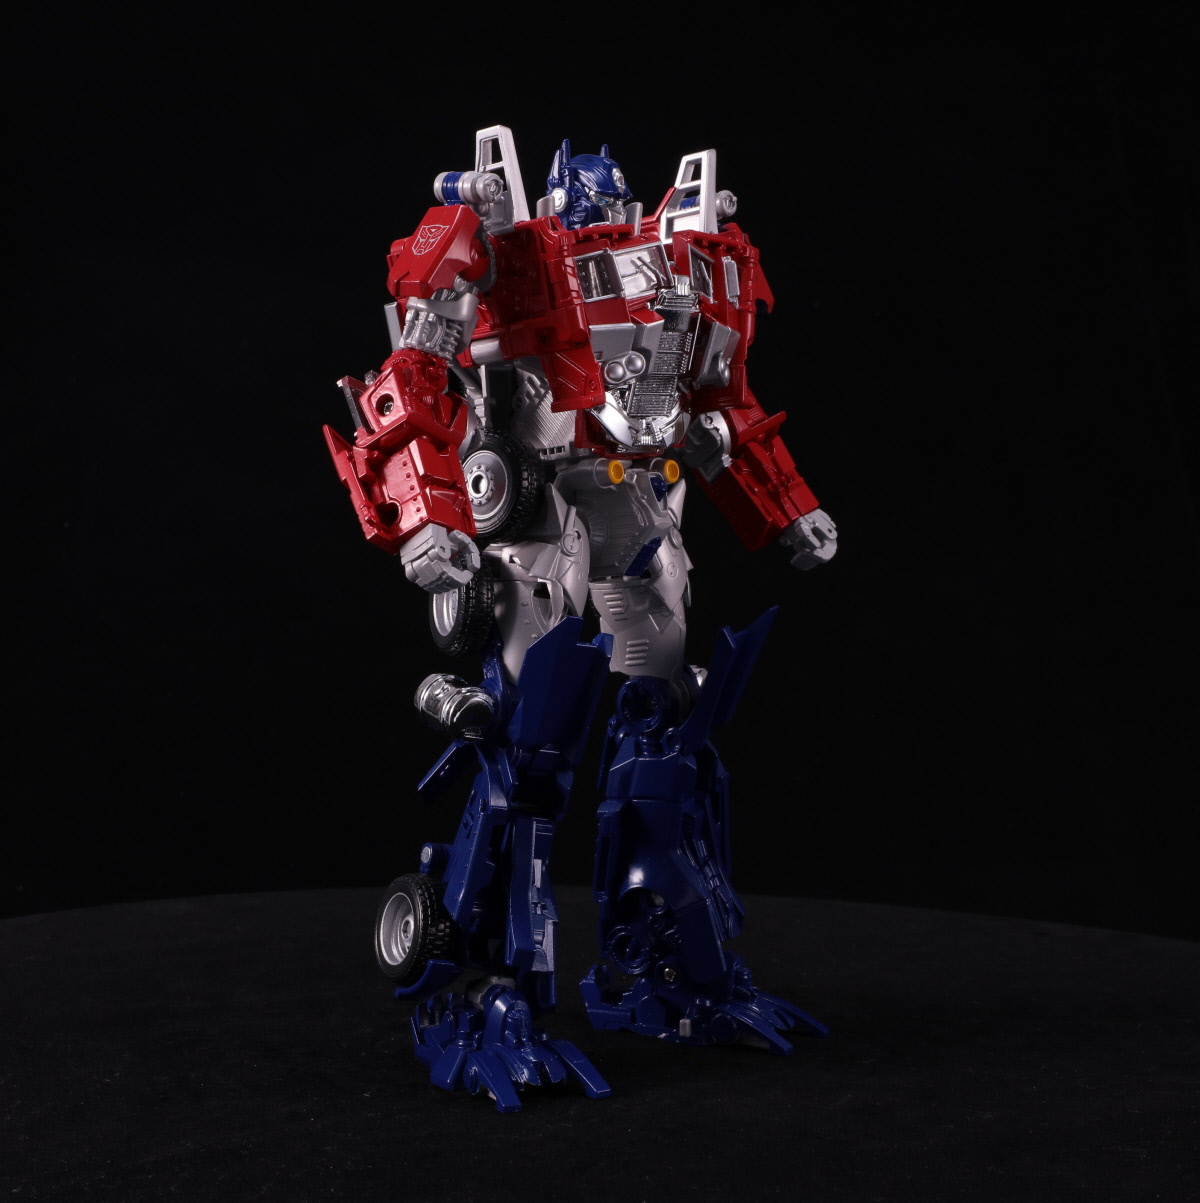 TAKARA TOMY TRANSFORMERS BB-01 LEGENDARY OPTIMUS PRIME ACTION FIGURE